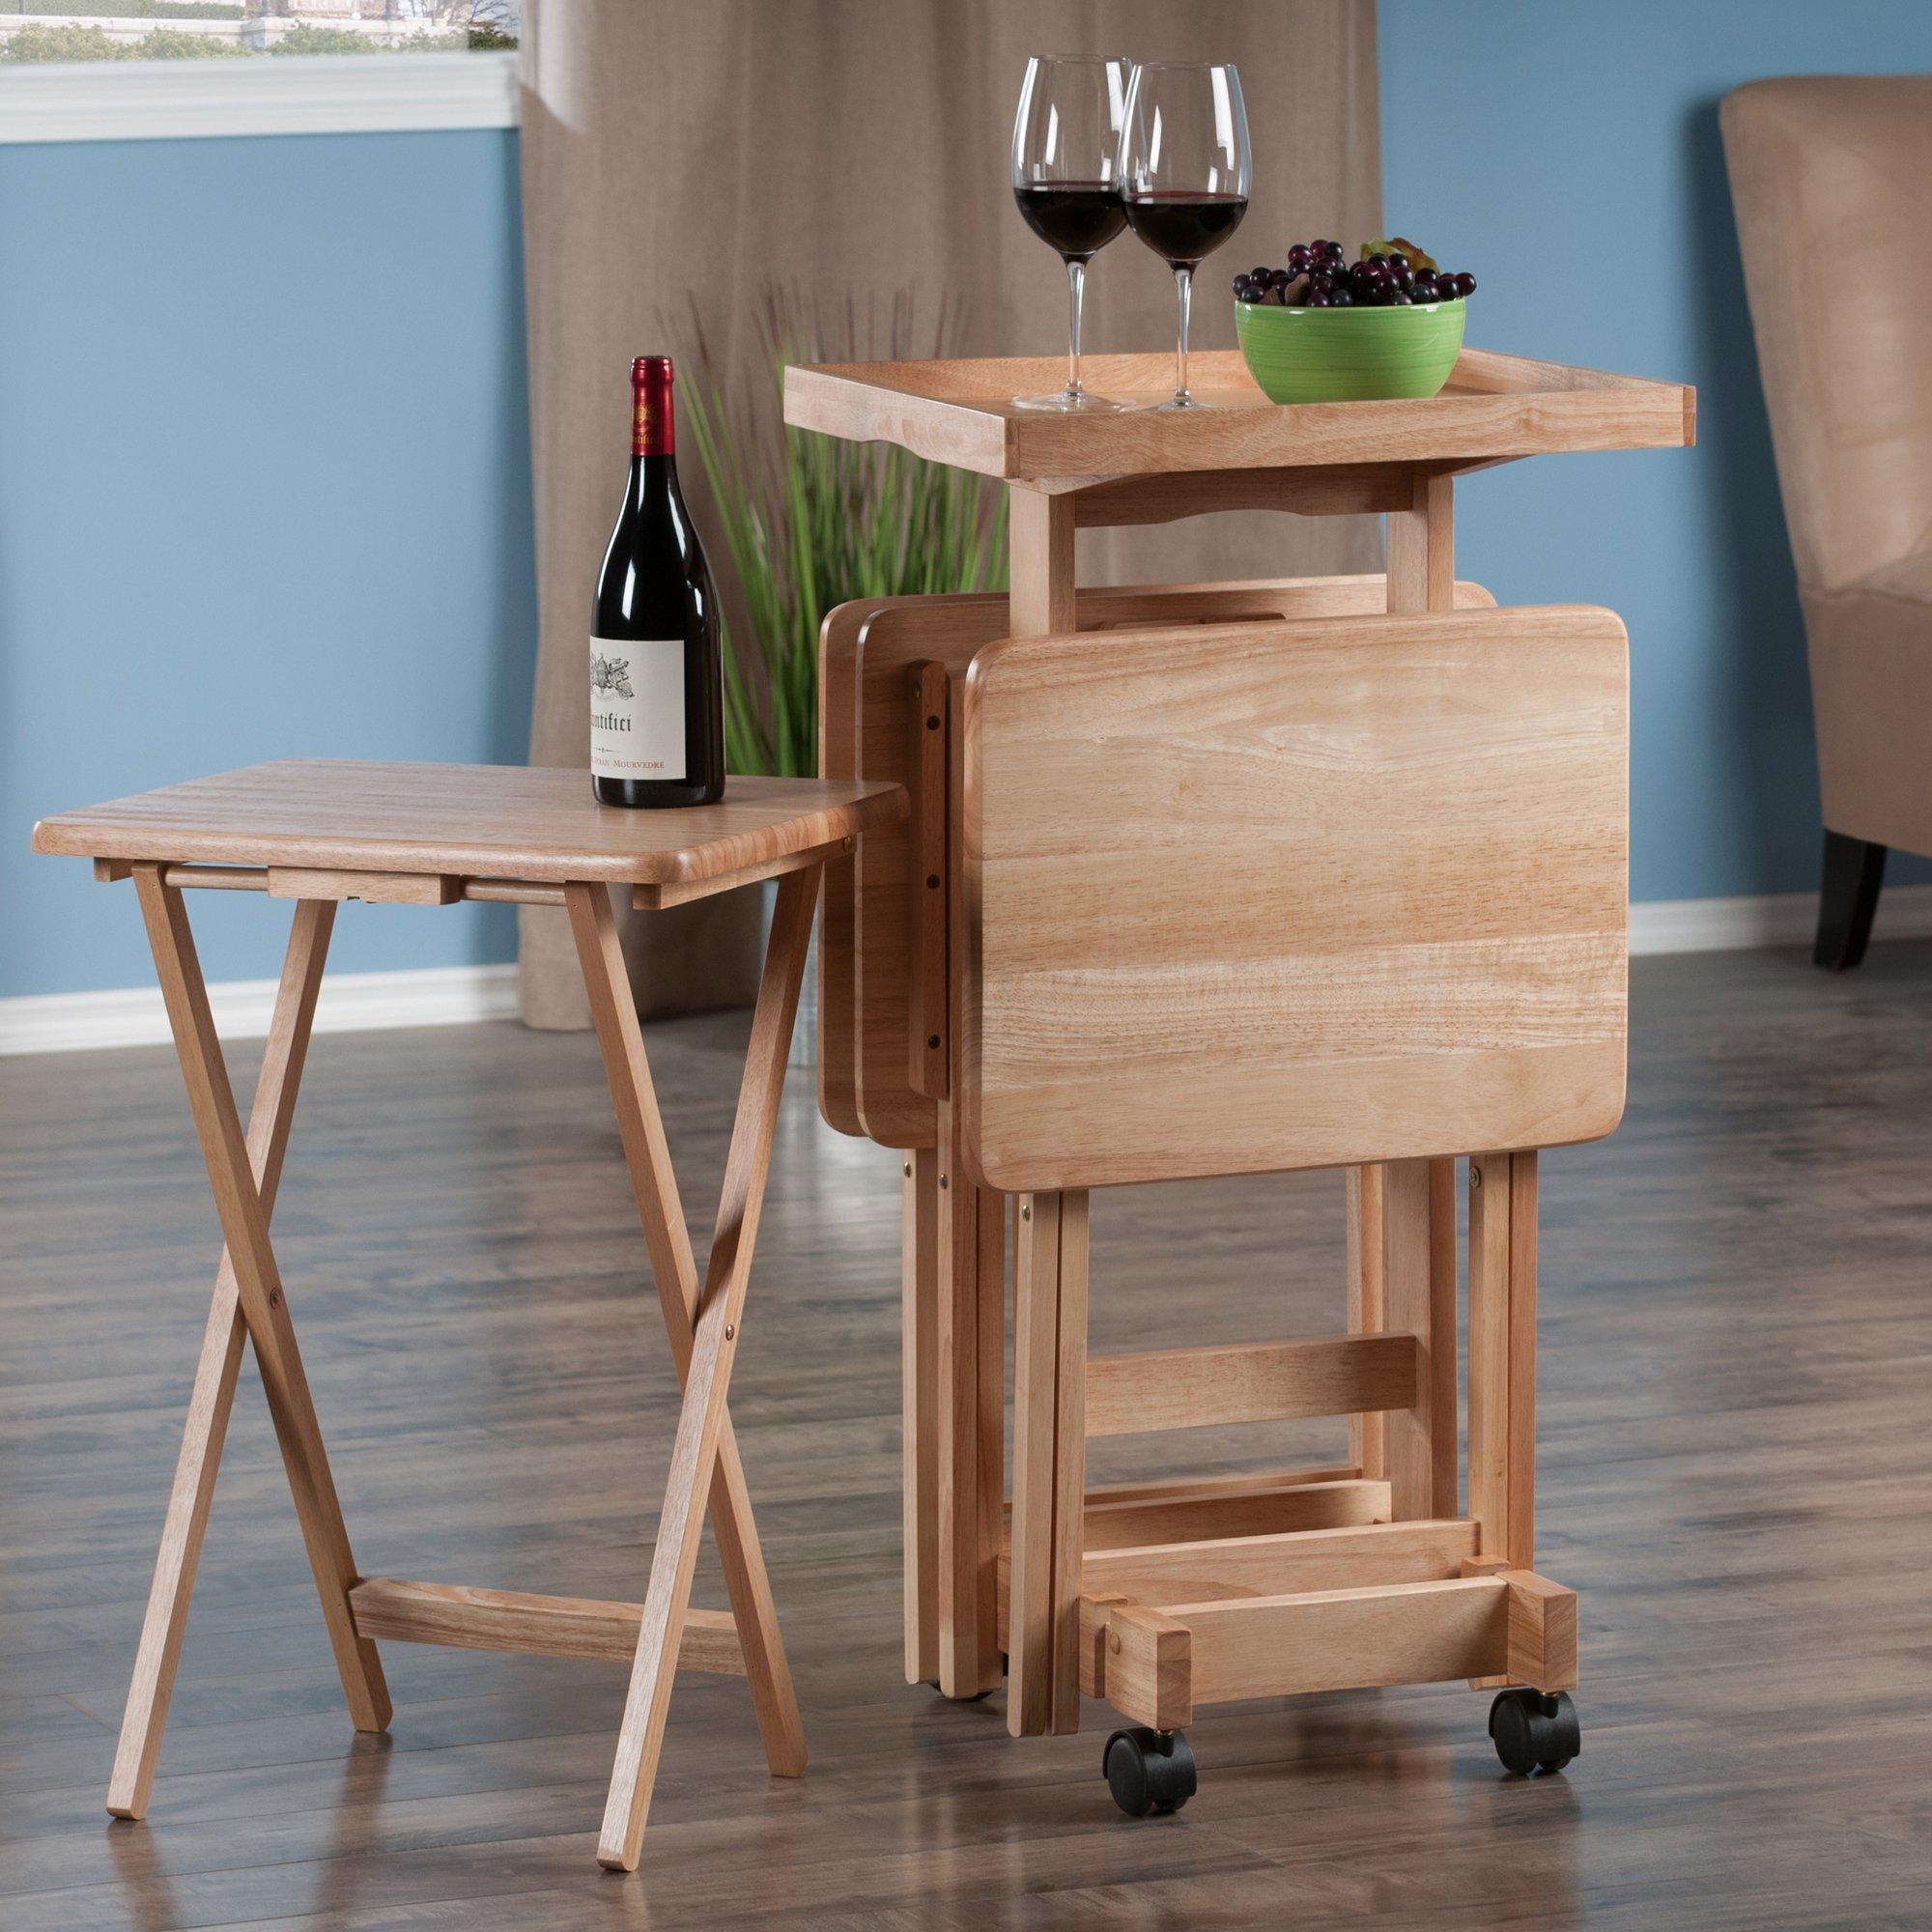 Winsome Wood 42820 Isabelle 6 Piece Snack Table Set, Natural by Winsome Wood (Image #10)